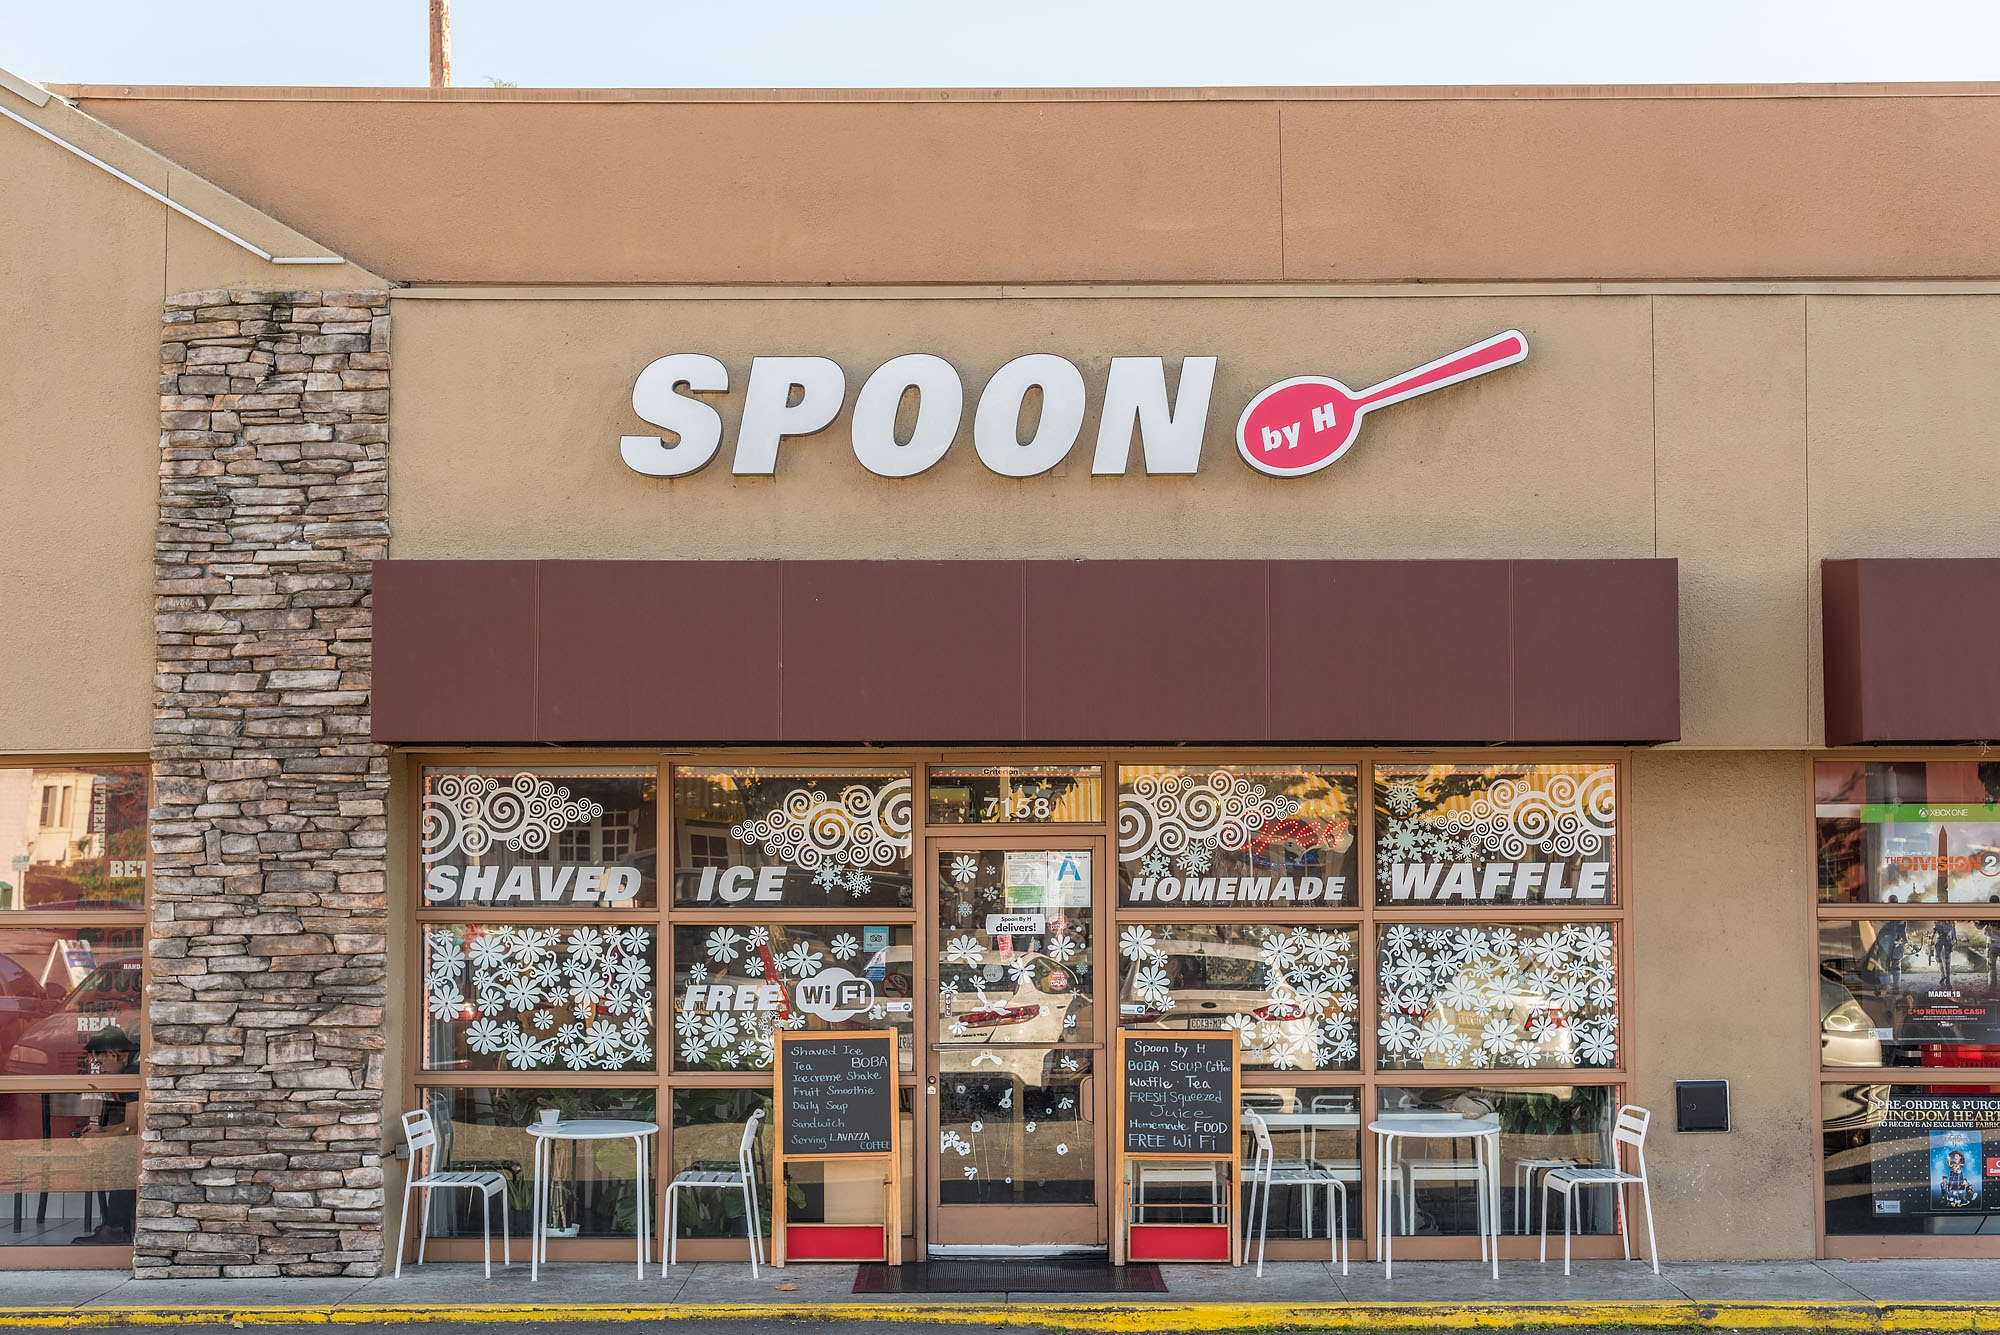 Spoon by H exterior in Los Angeles, California